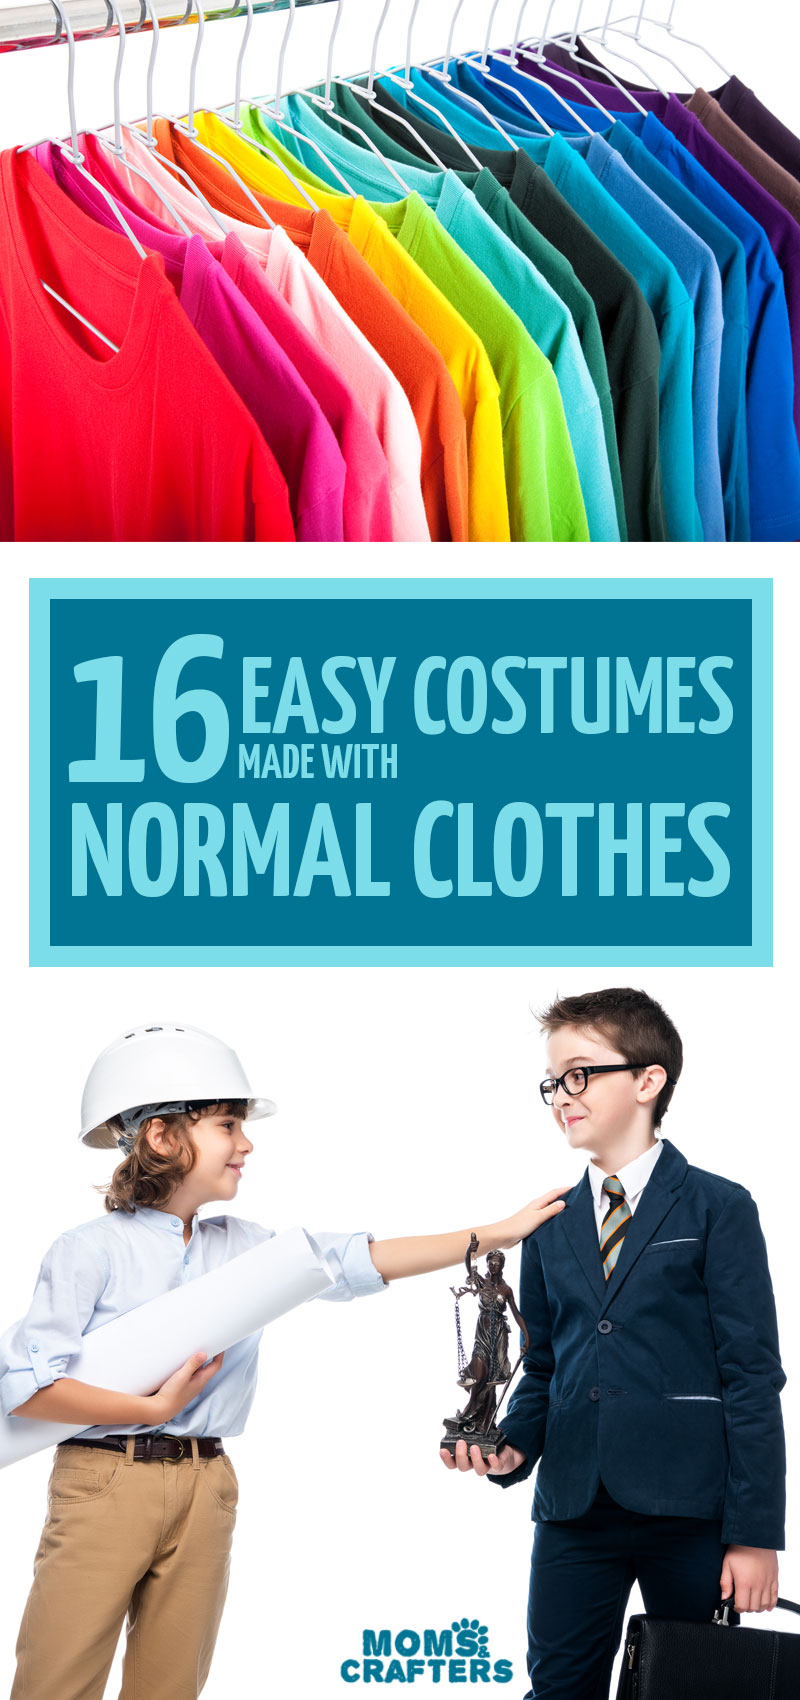 Click how to learn how to make some adorable easy costumes with normal clothes! These DIY costumes for toddlers, babies, preschoolers and kids use real clothing and are so much fun!